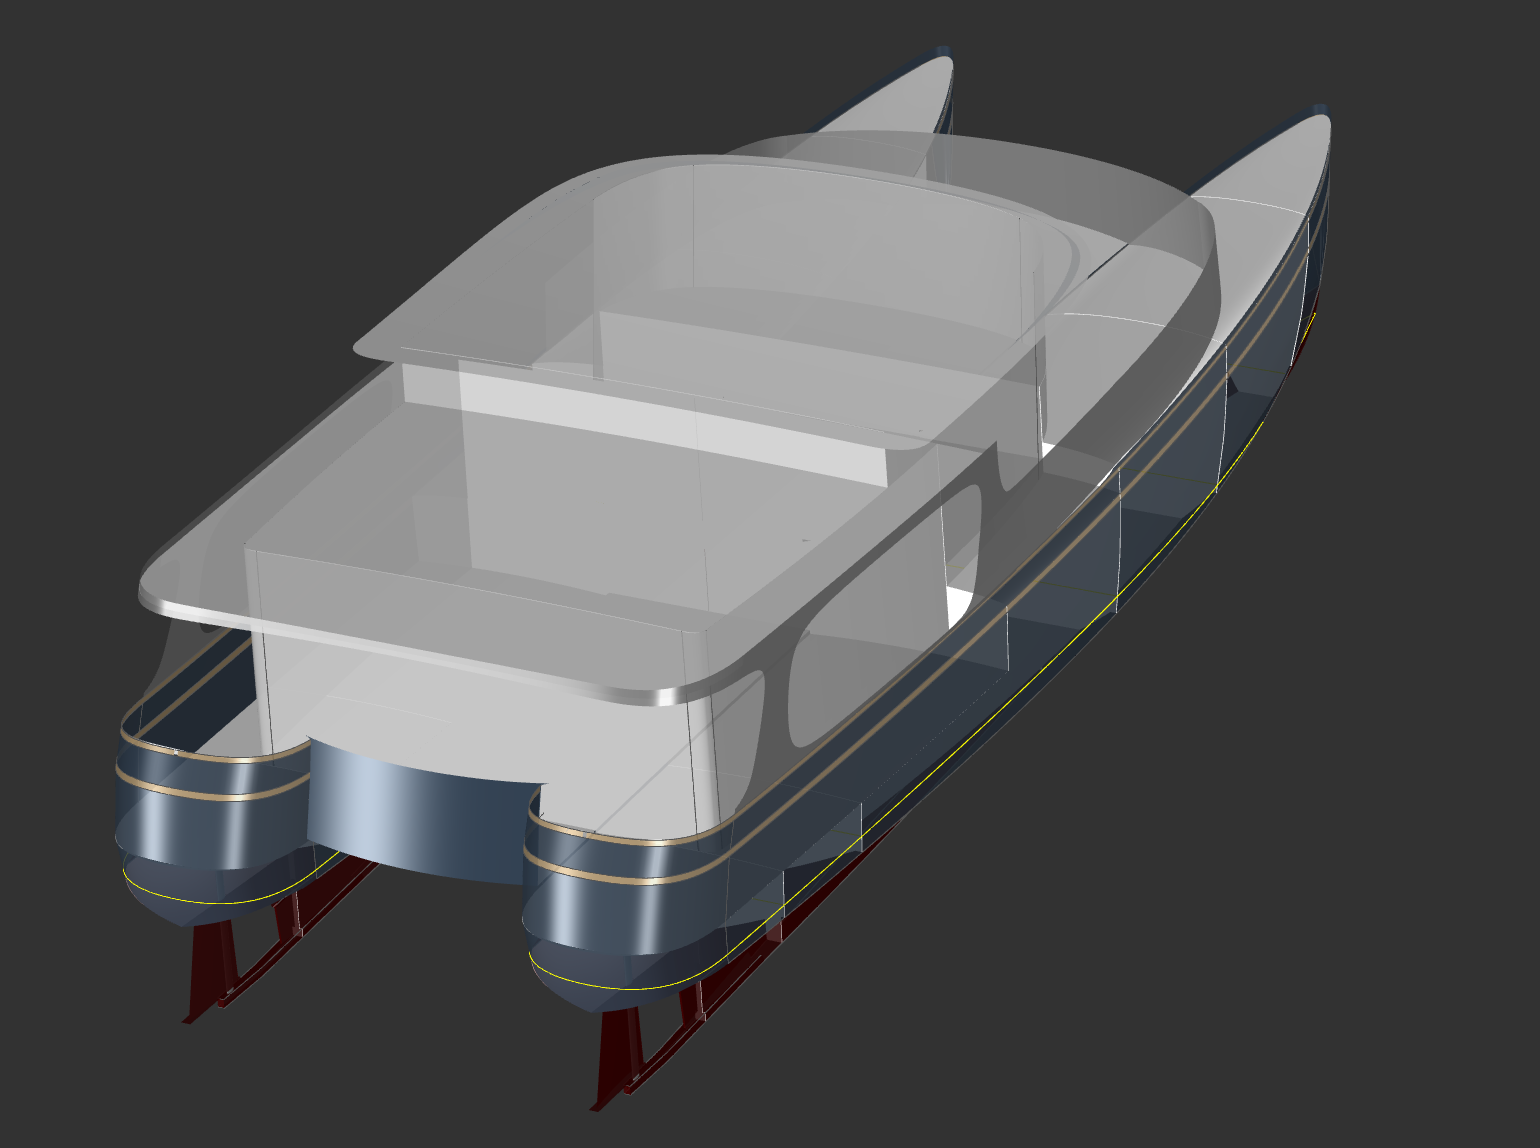 50' Aluminum Power Catamaran - WAVE CAT - Kasten Marine Design, Inc.